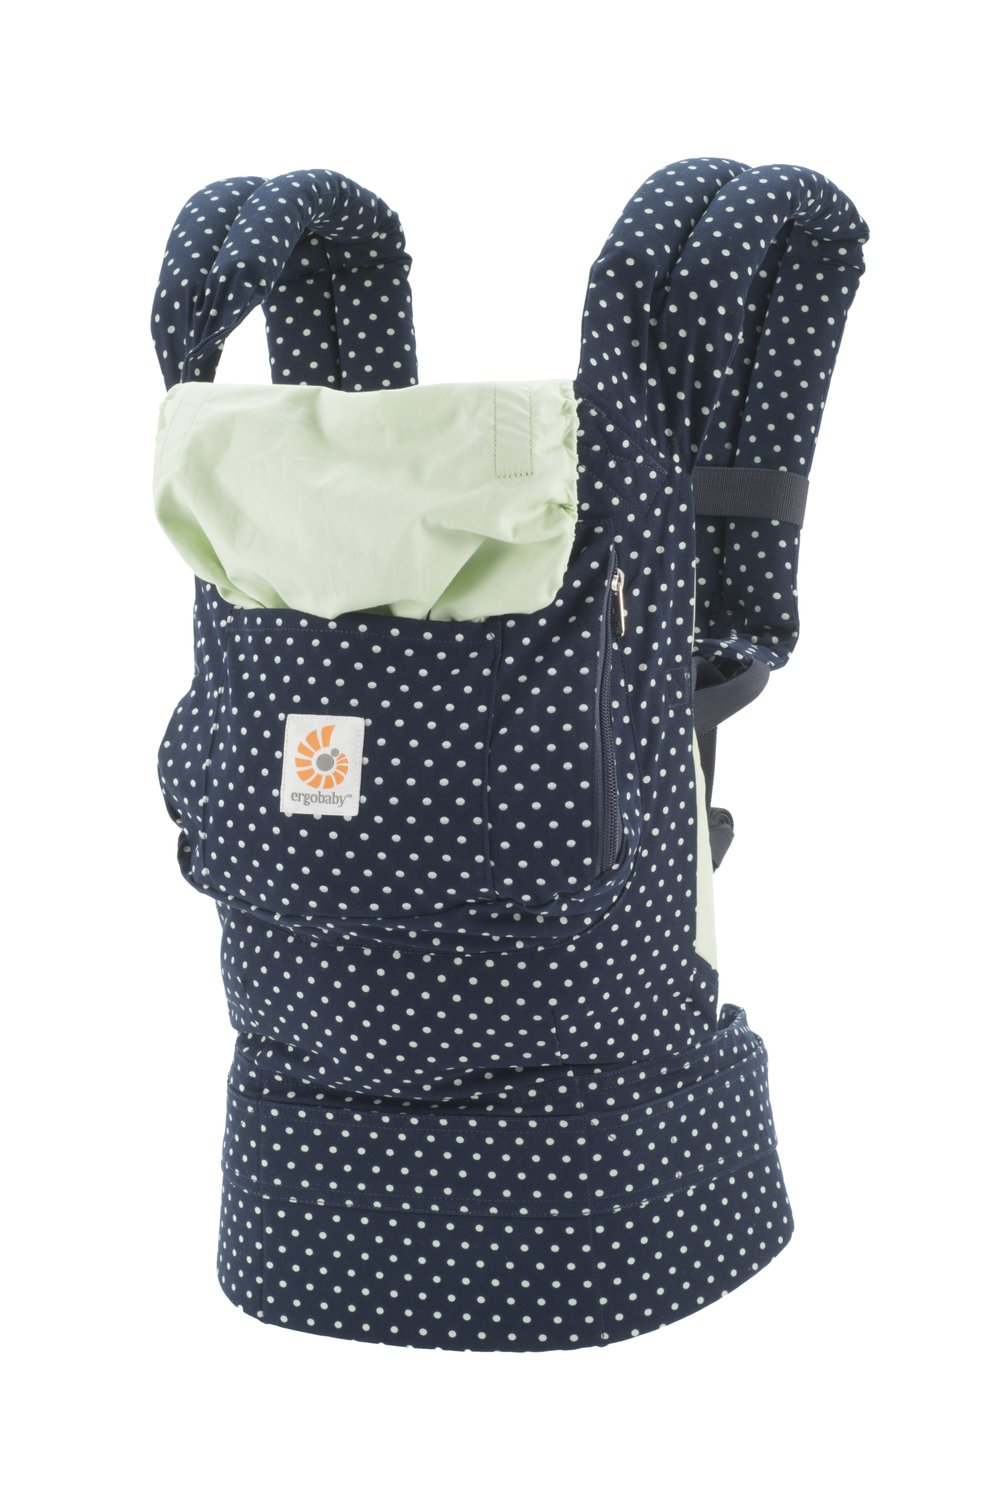 Ergobaby Original Collection Evolutionary Backpack Baby Carrier one size Ergobaby The baby's weight is evenly distributed between the wearer's hips and shoulders. The baby is ergonomically cradled in a natural seated position. It has front, back, and hip carrying positions. 6